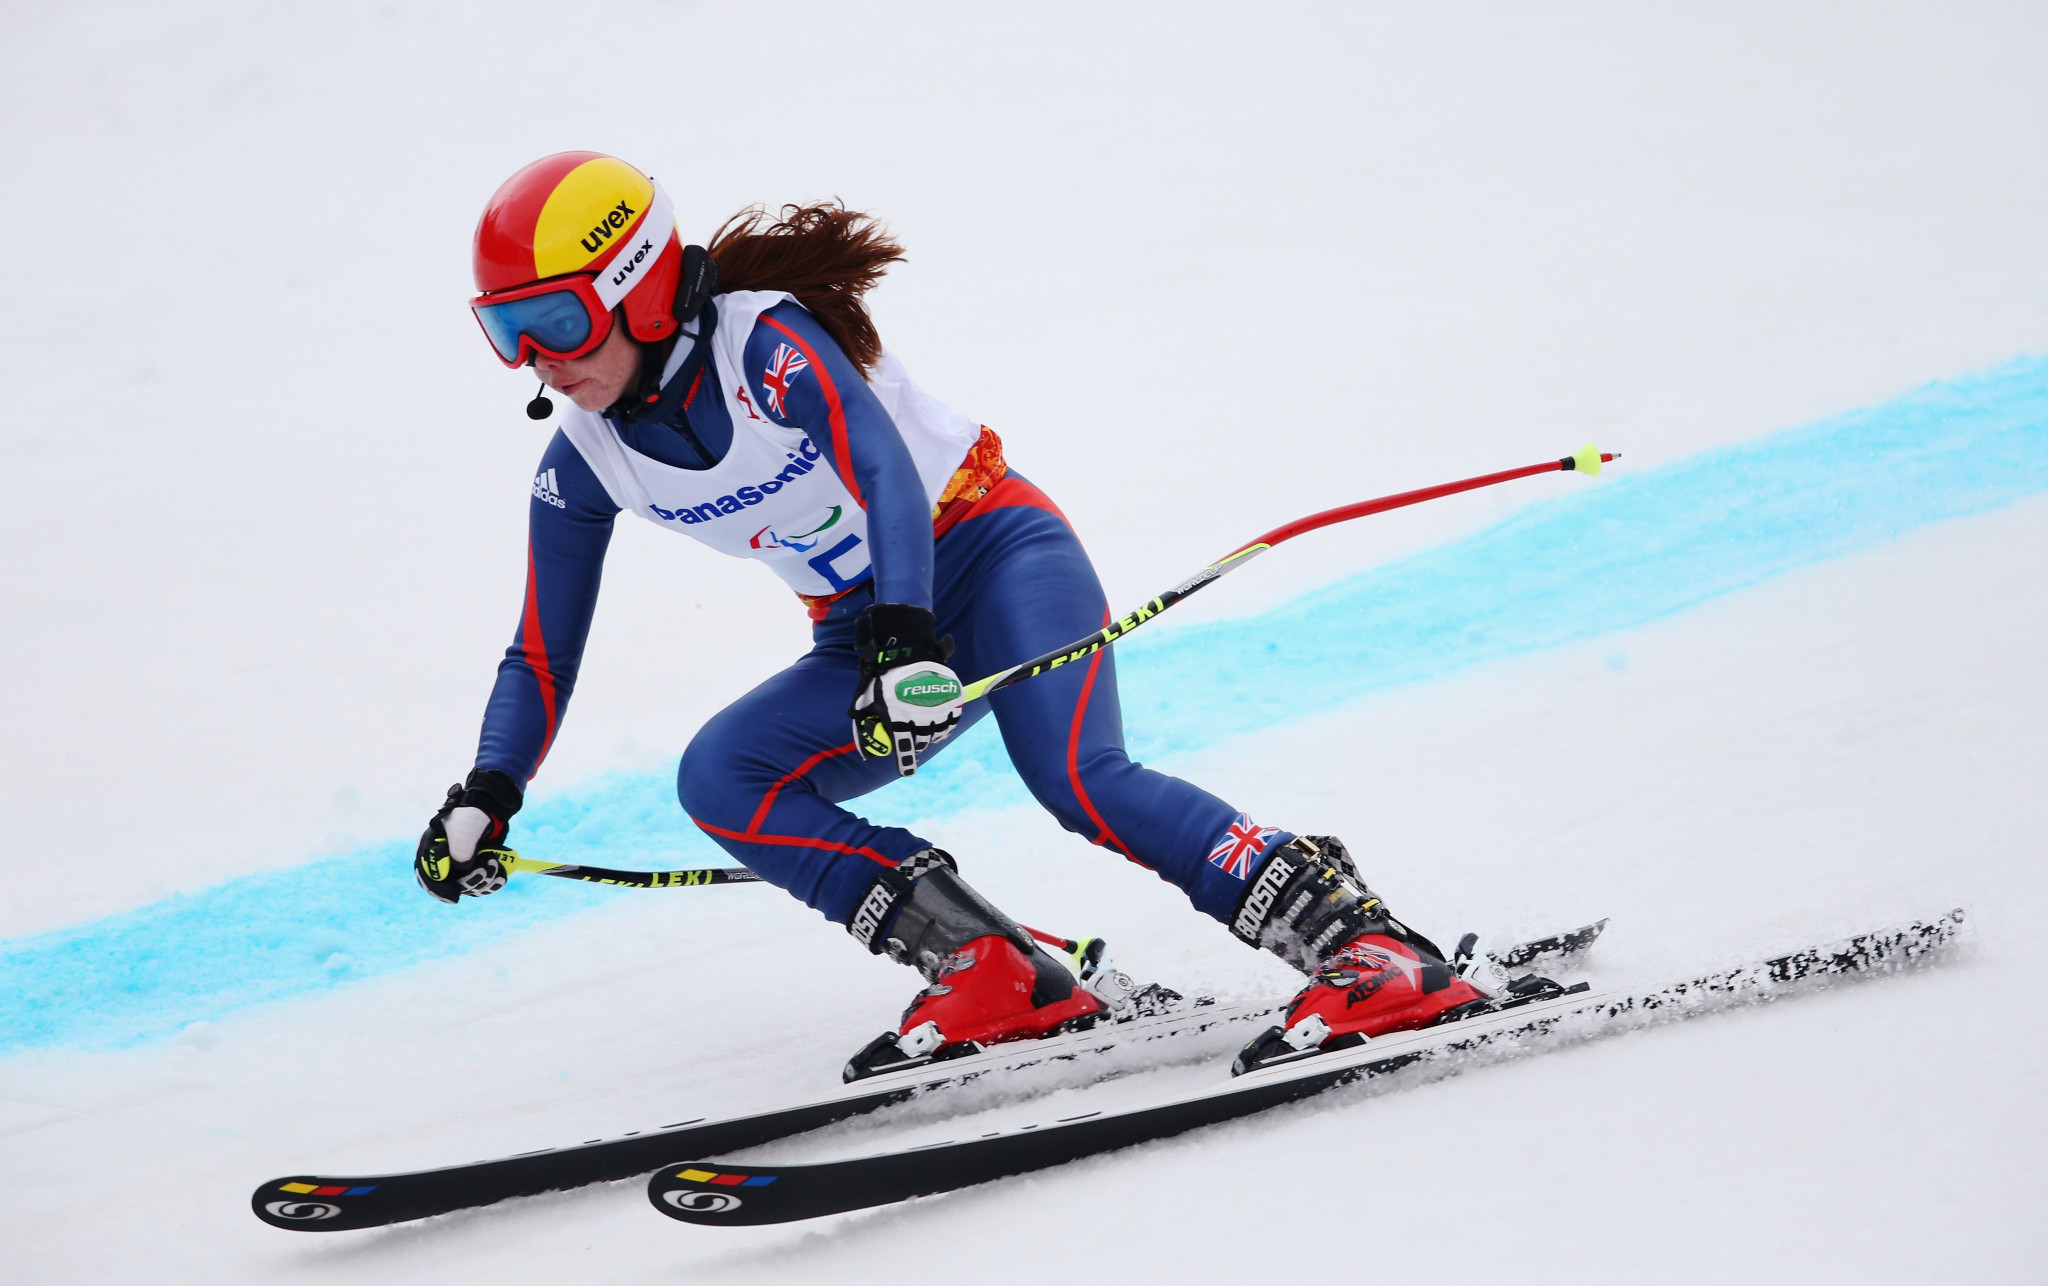 Jade Etherington, who won four medals in Para-Alpine skiing at Sochi 2014, is among the former athletes to have benefited from the Paralympic Inspiration Programme ©Getty Images